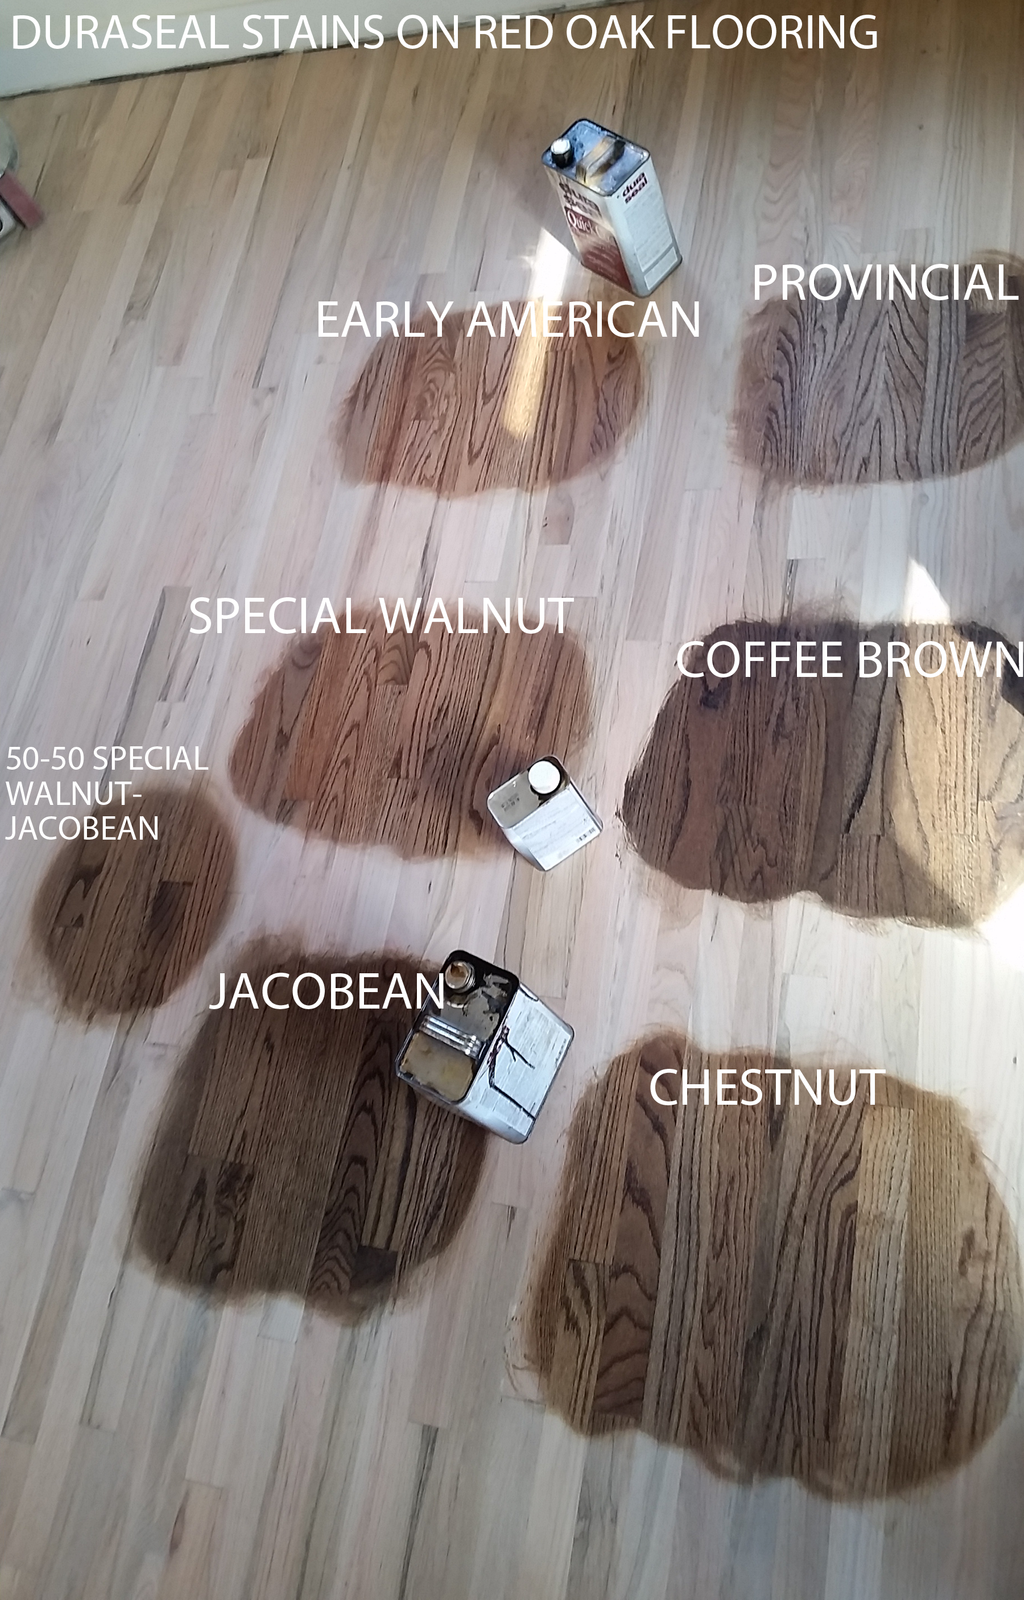 Duraseal Stain Red Oak Wood Flooring Chestnut Bedroom Stone Look Laminate Flooring Ideas